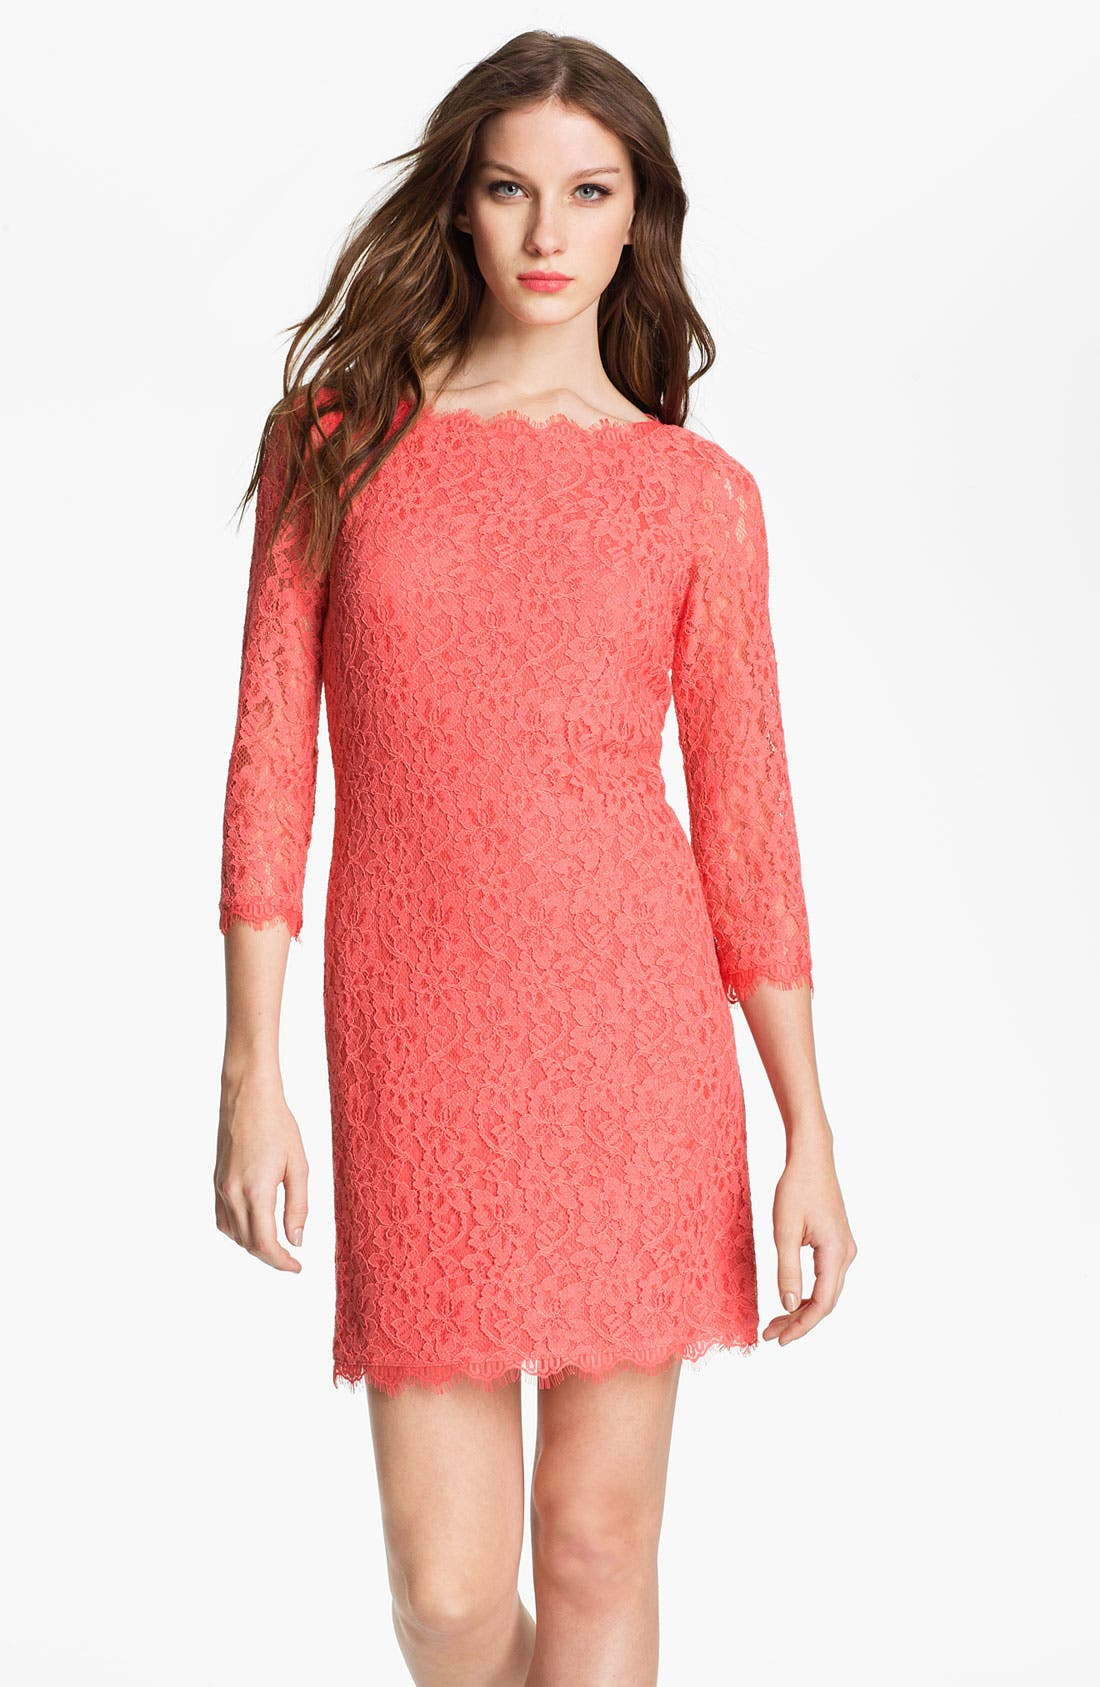 Alternate Image 1 Selected - Diane von Furstenberg 'Zarita' Lace Dress